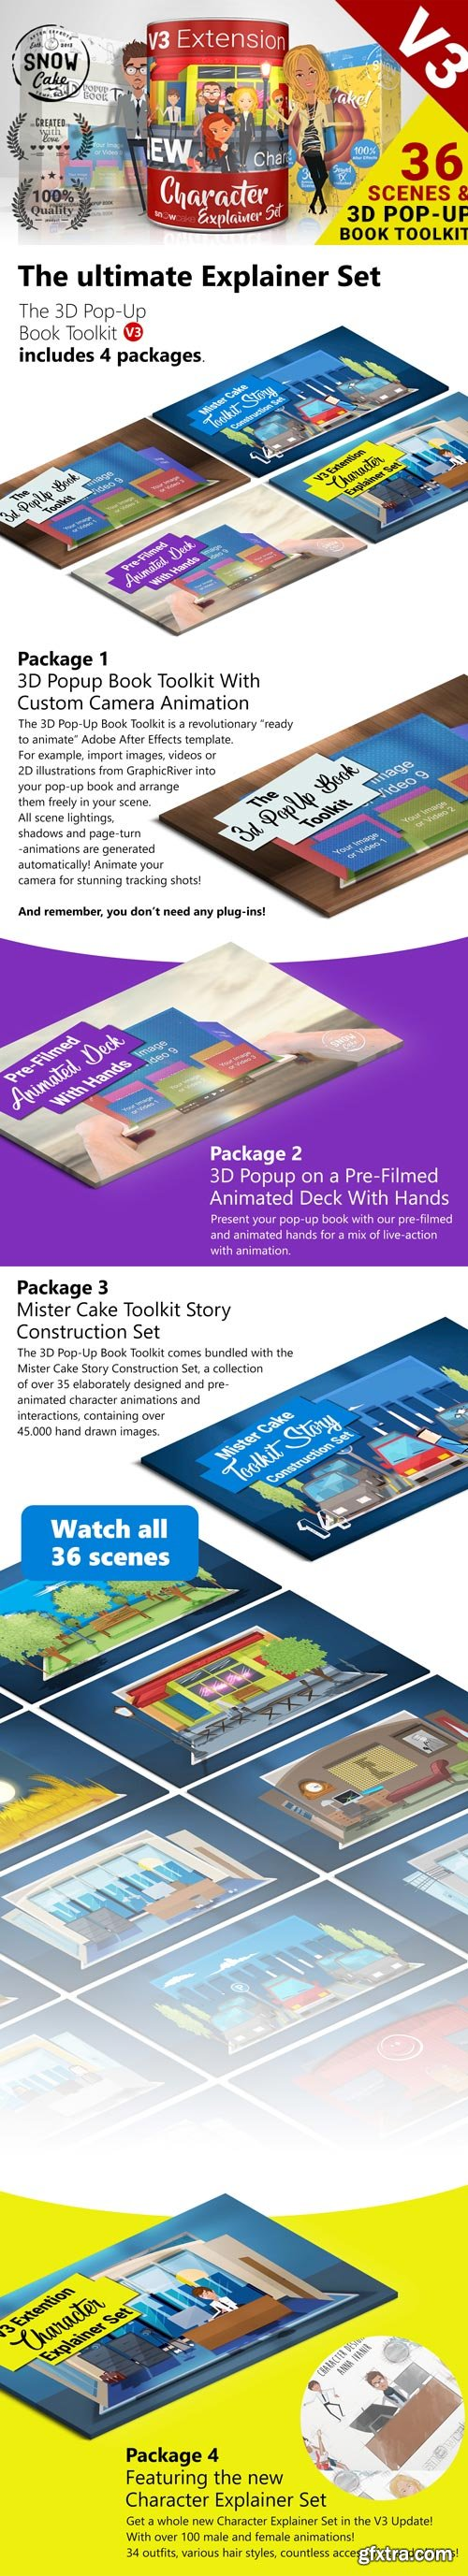 Videohive - 3D Pop-Up Book Toolkit featuring Mister Cake | Toolkit & Story Construction Set V3 - 19845454